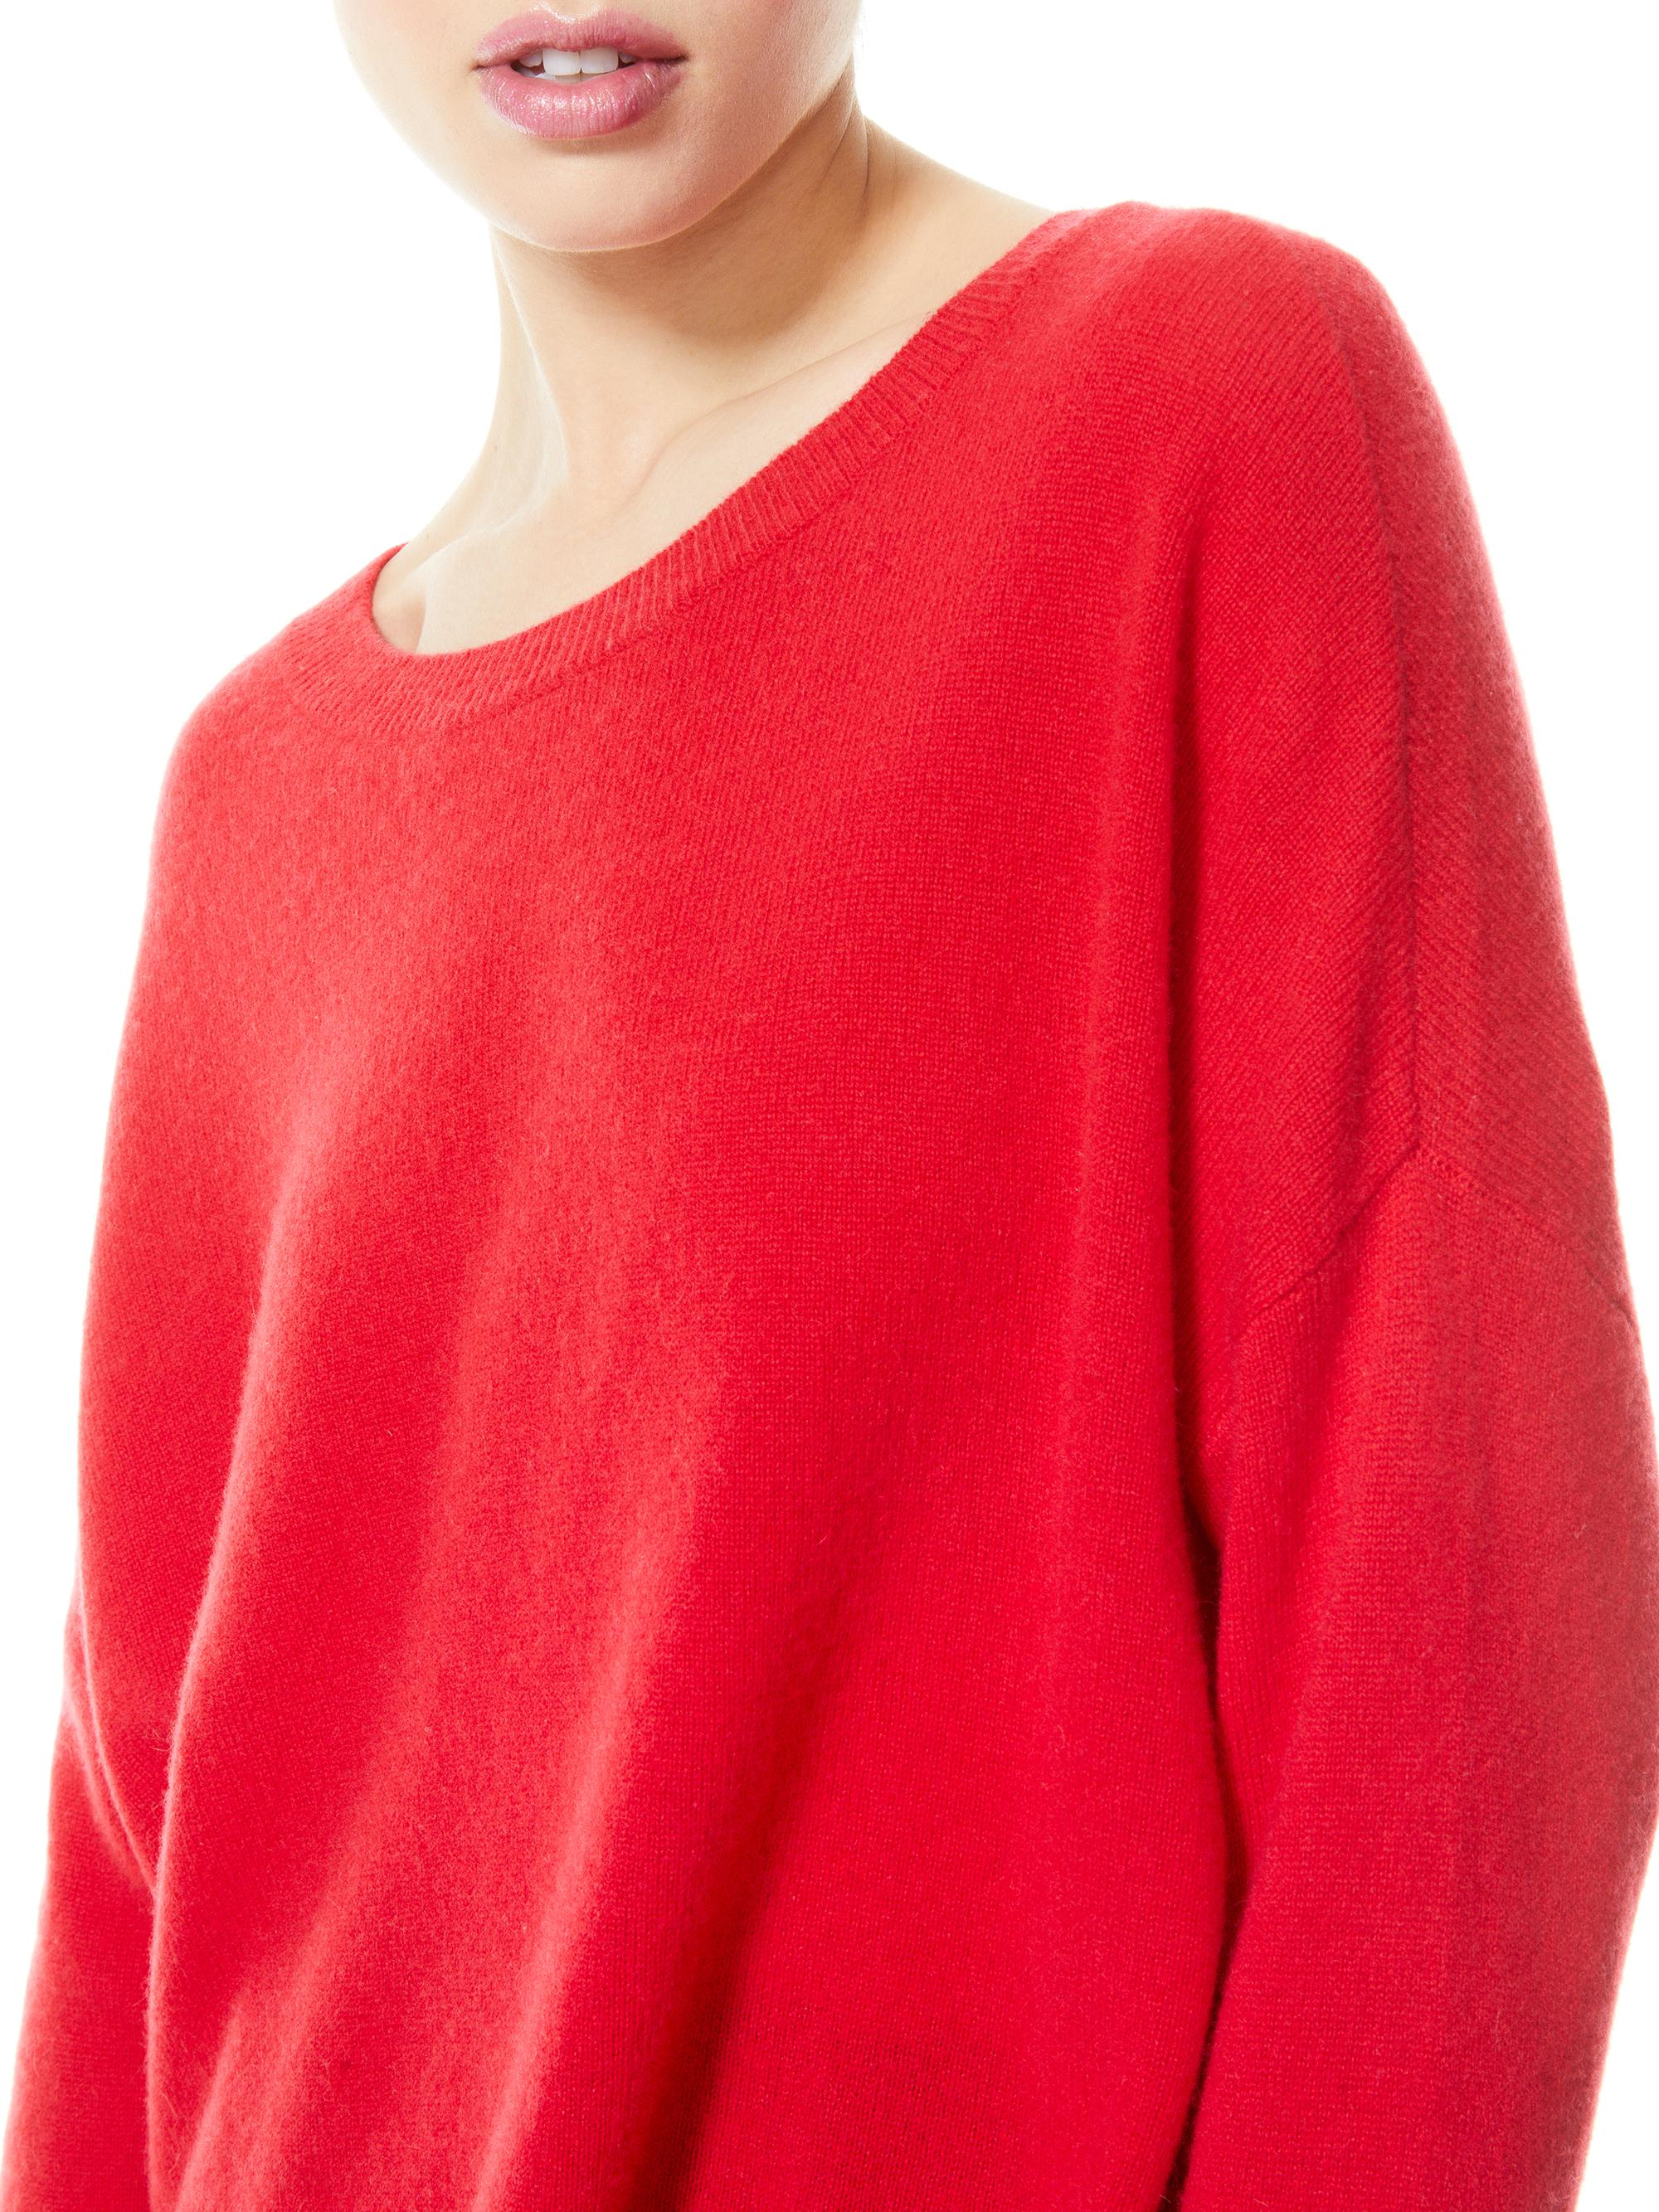 ROMA OVERSIZED PULLOVER 4